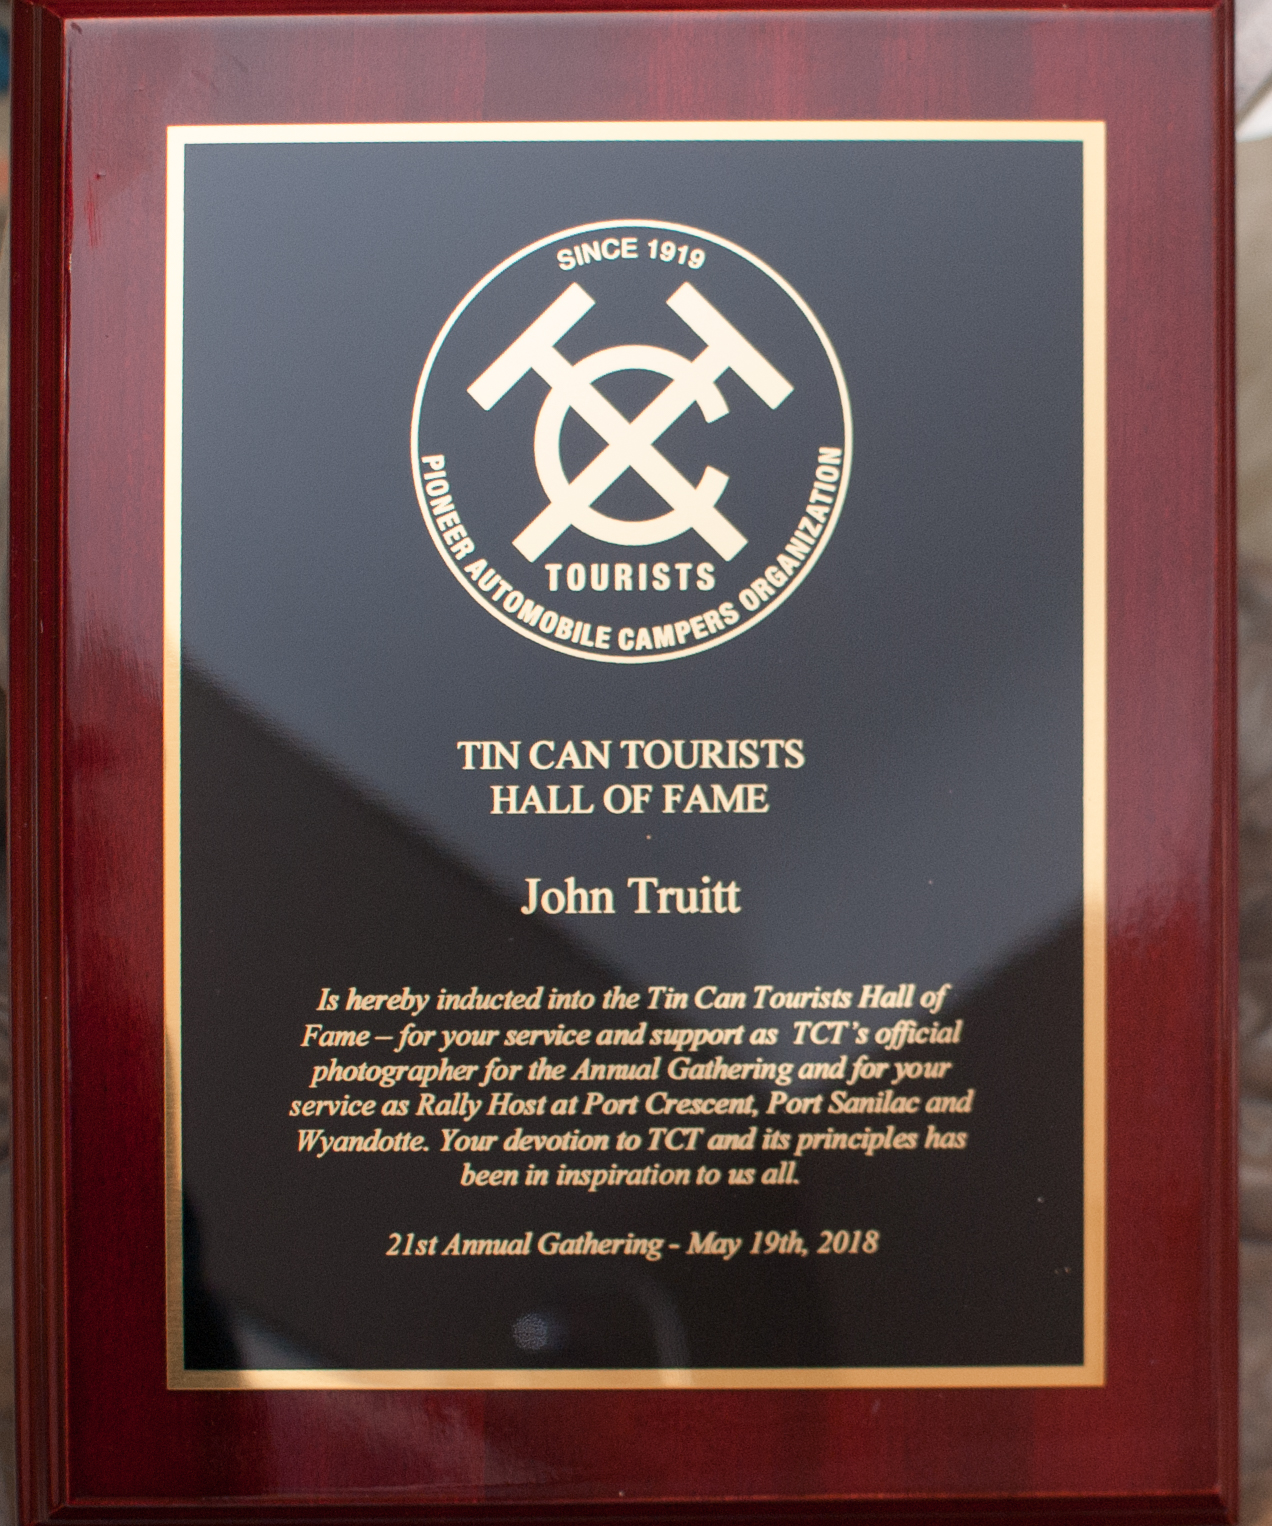 John Truitt Inducted Into The TCT Hall Of Fame